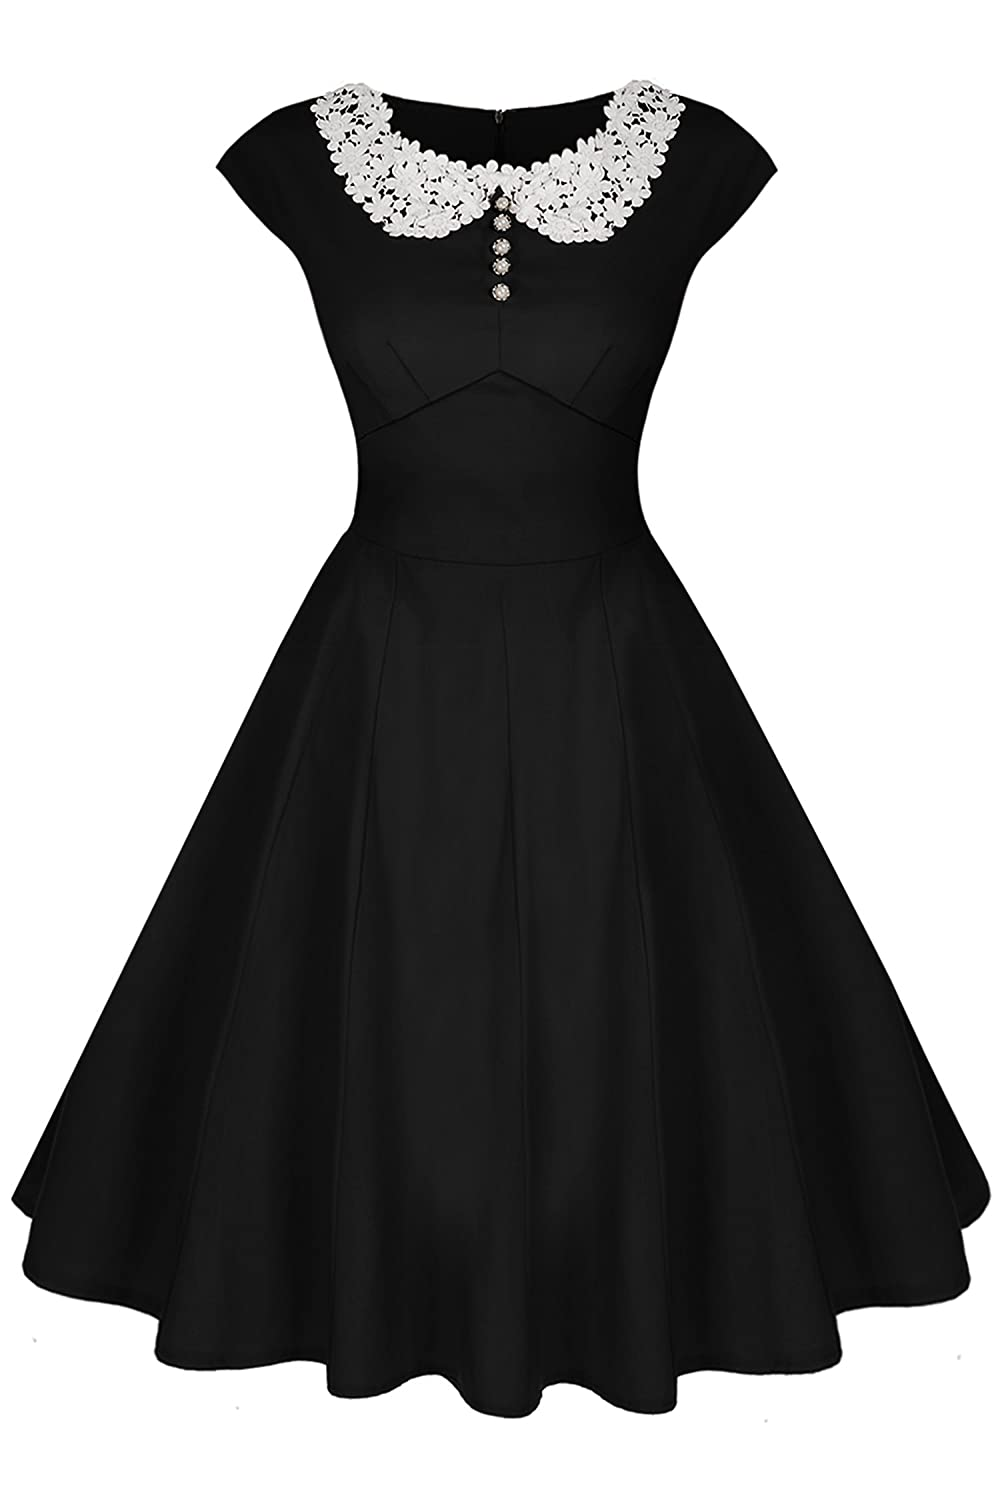 Vintage Inspired Cocktail Dresses, Party Dresses Audrey Hepburn Style 1940s Rockabilly Evening Dress  AT vintagedancer.com